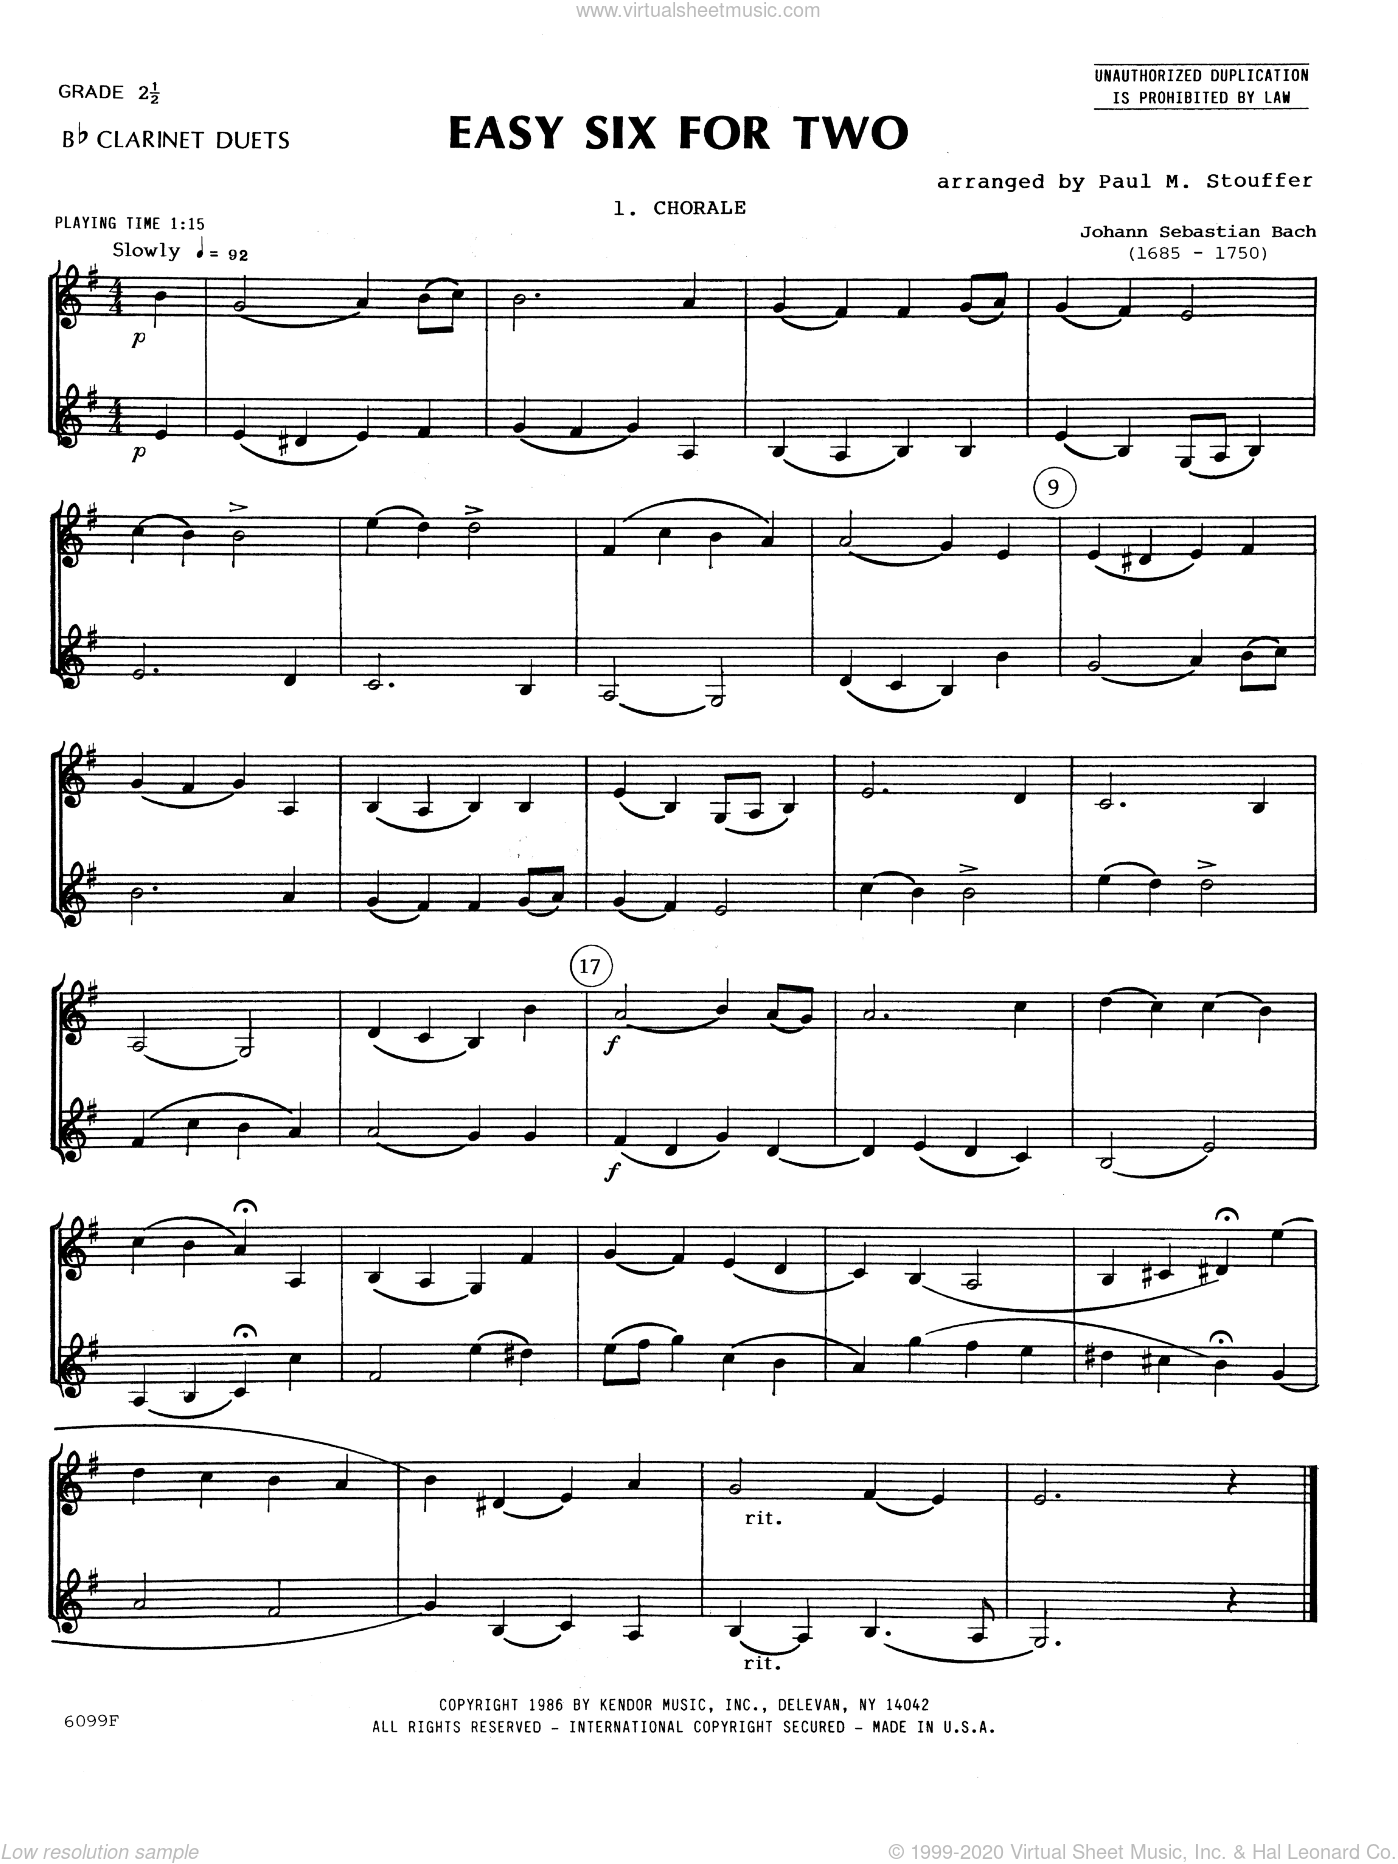 Easy Six For Two sheet music for two clarinets by Stouffer. Score Image Preview.